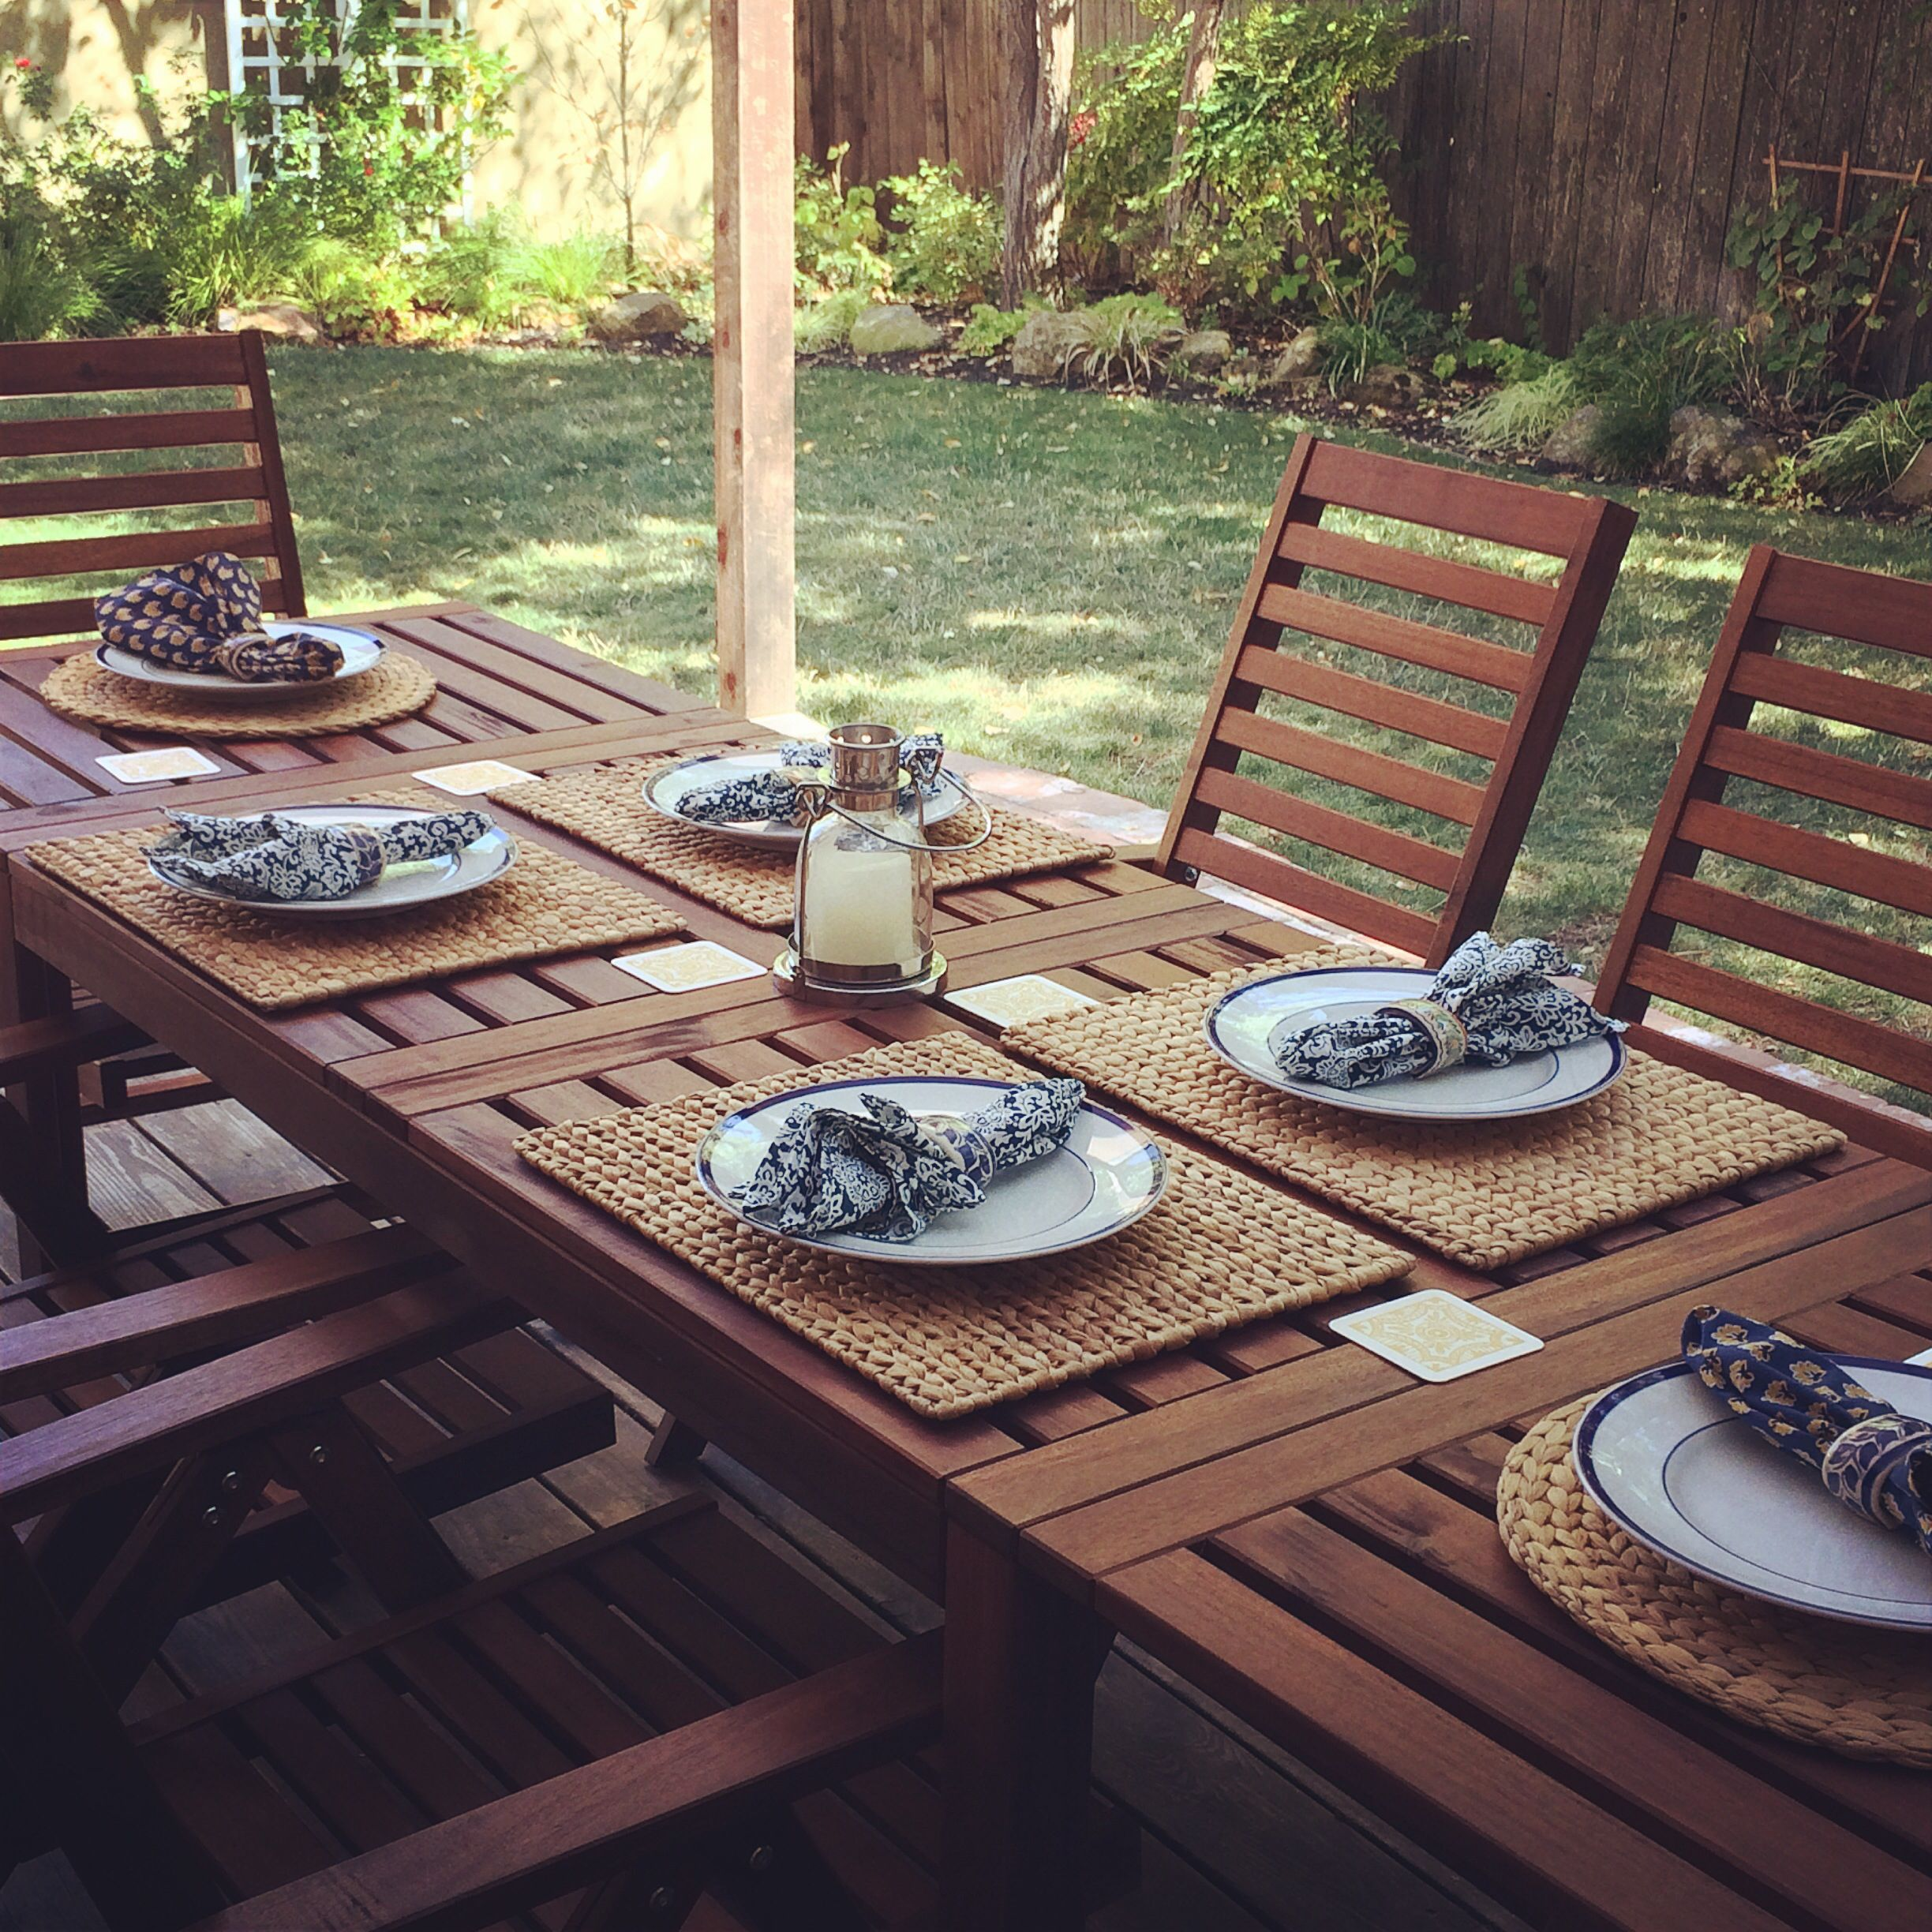 ikea applaro outdoor furniture | eccleston | ikea outdoor, outdoor